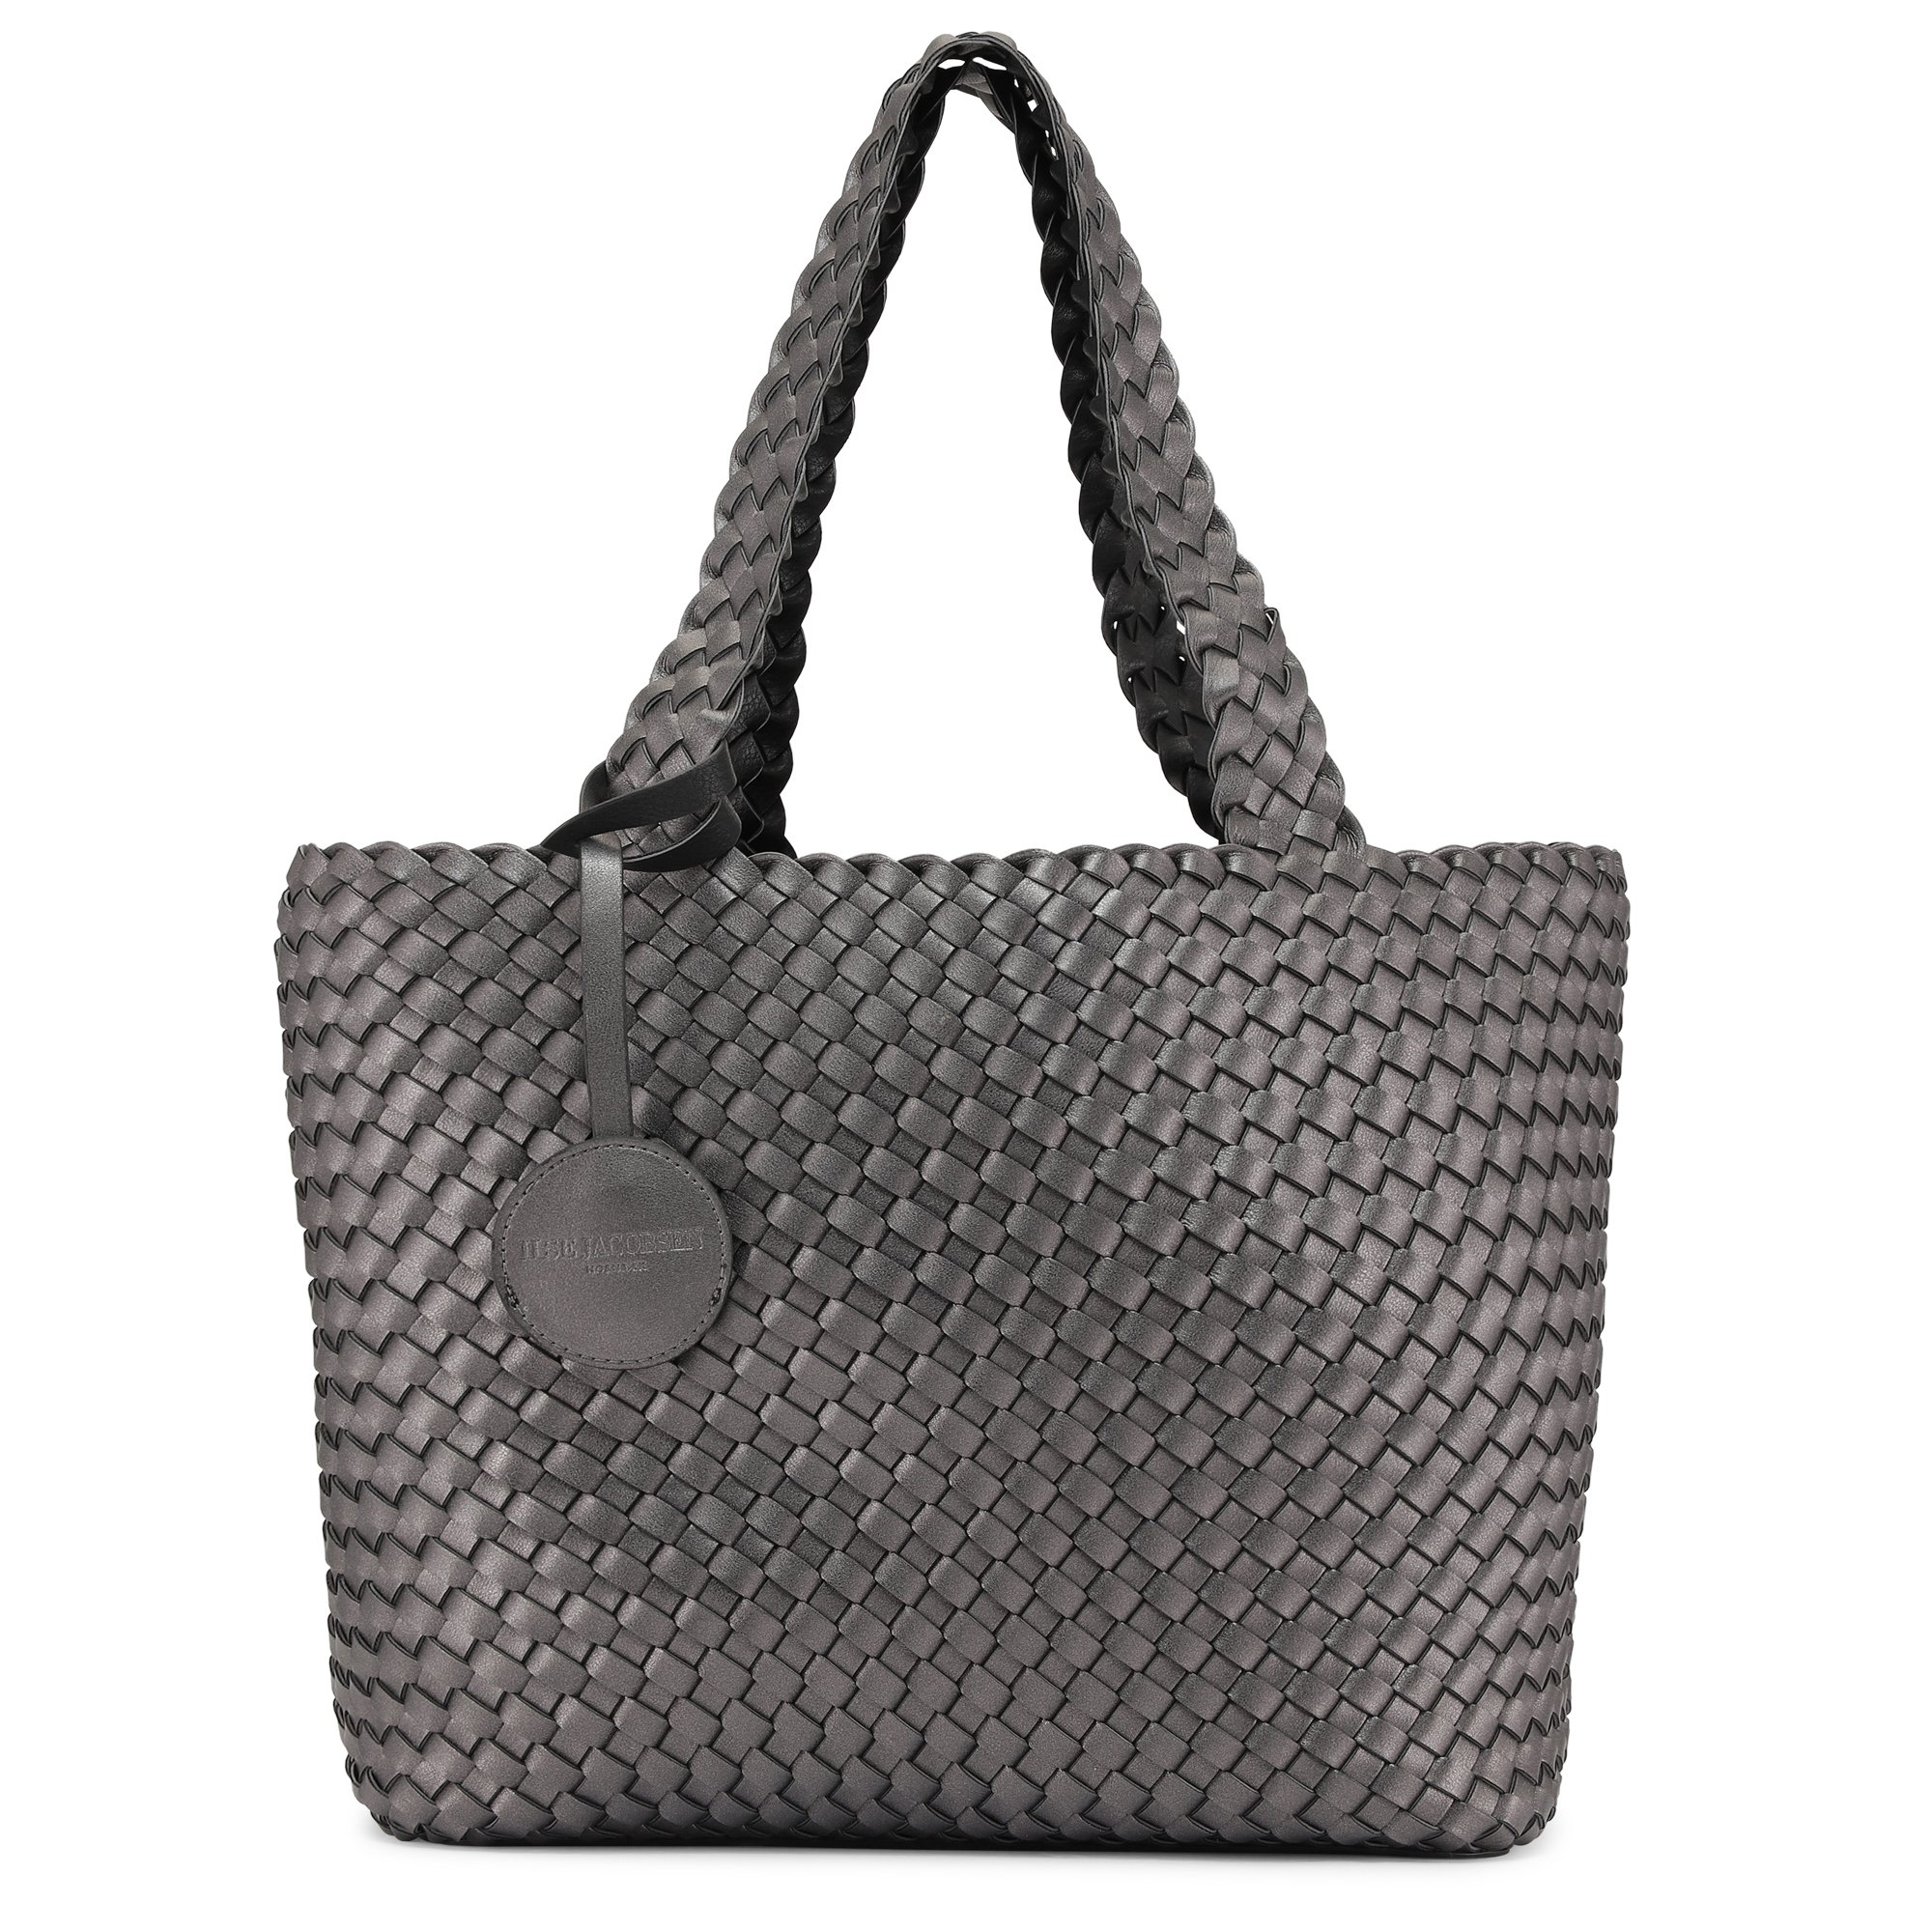 Ilse Jacobsen Bag08 001718 Black Gun Metal